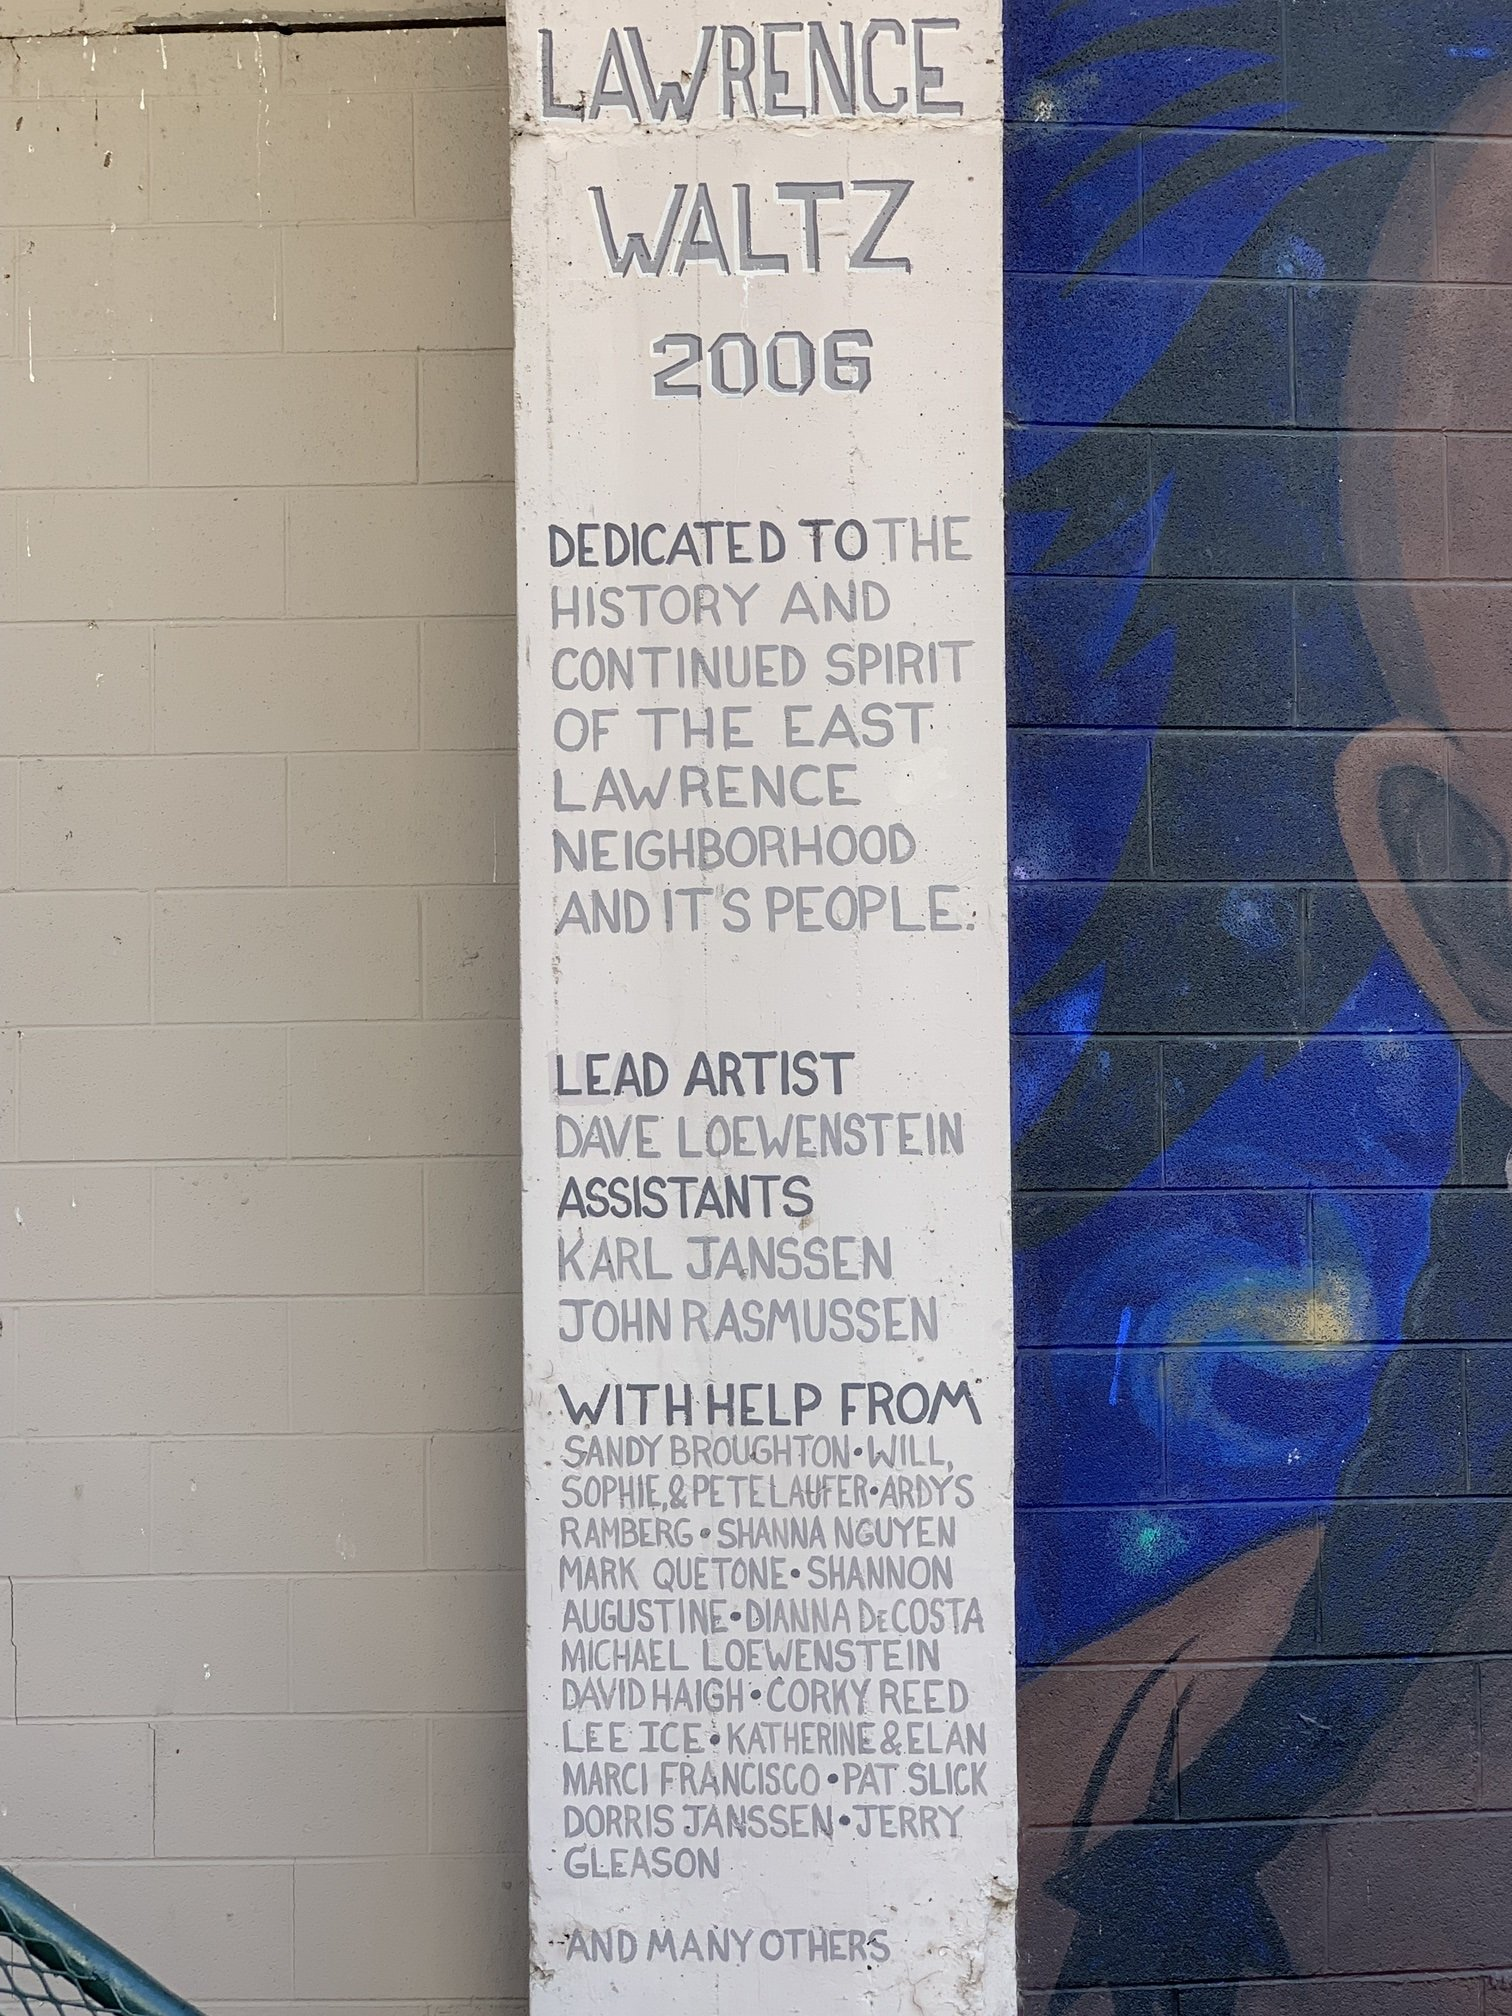 The contributors to the mural.